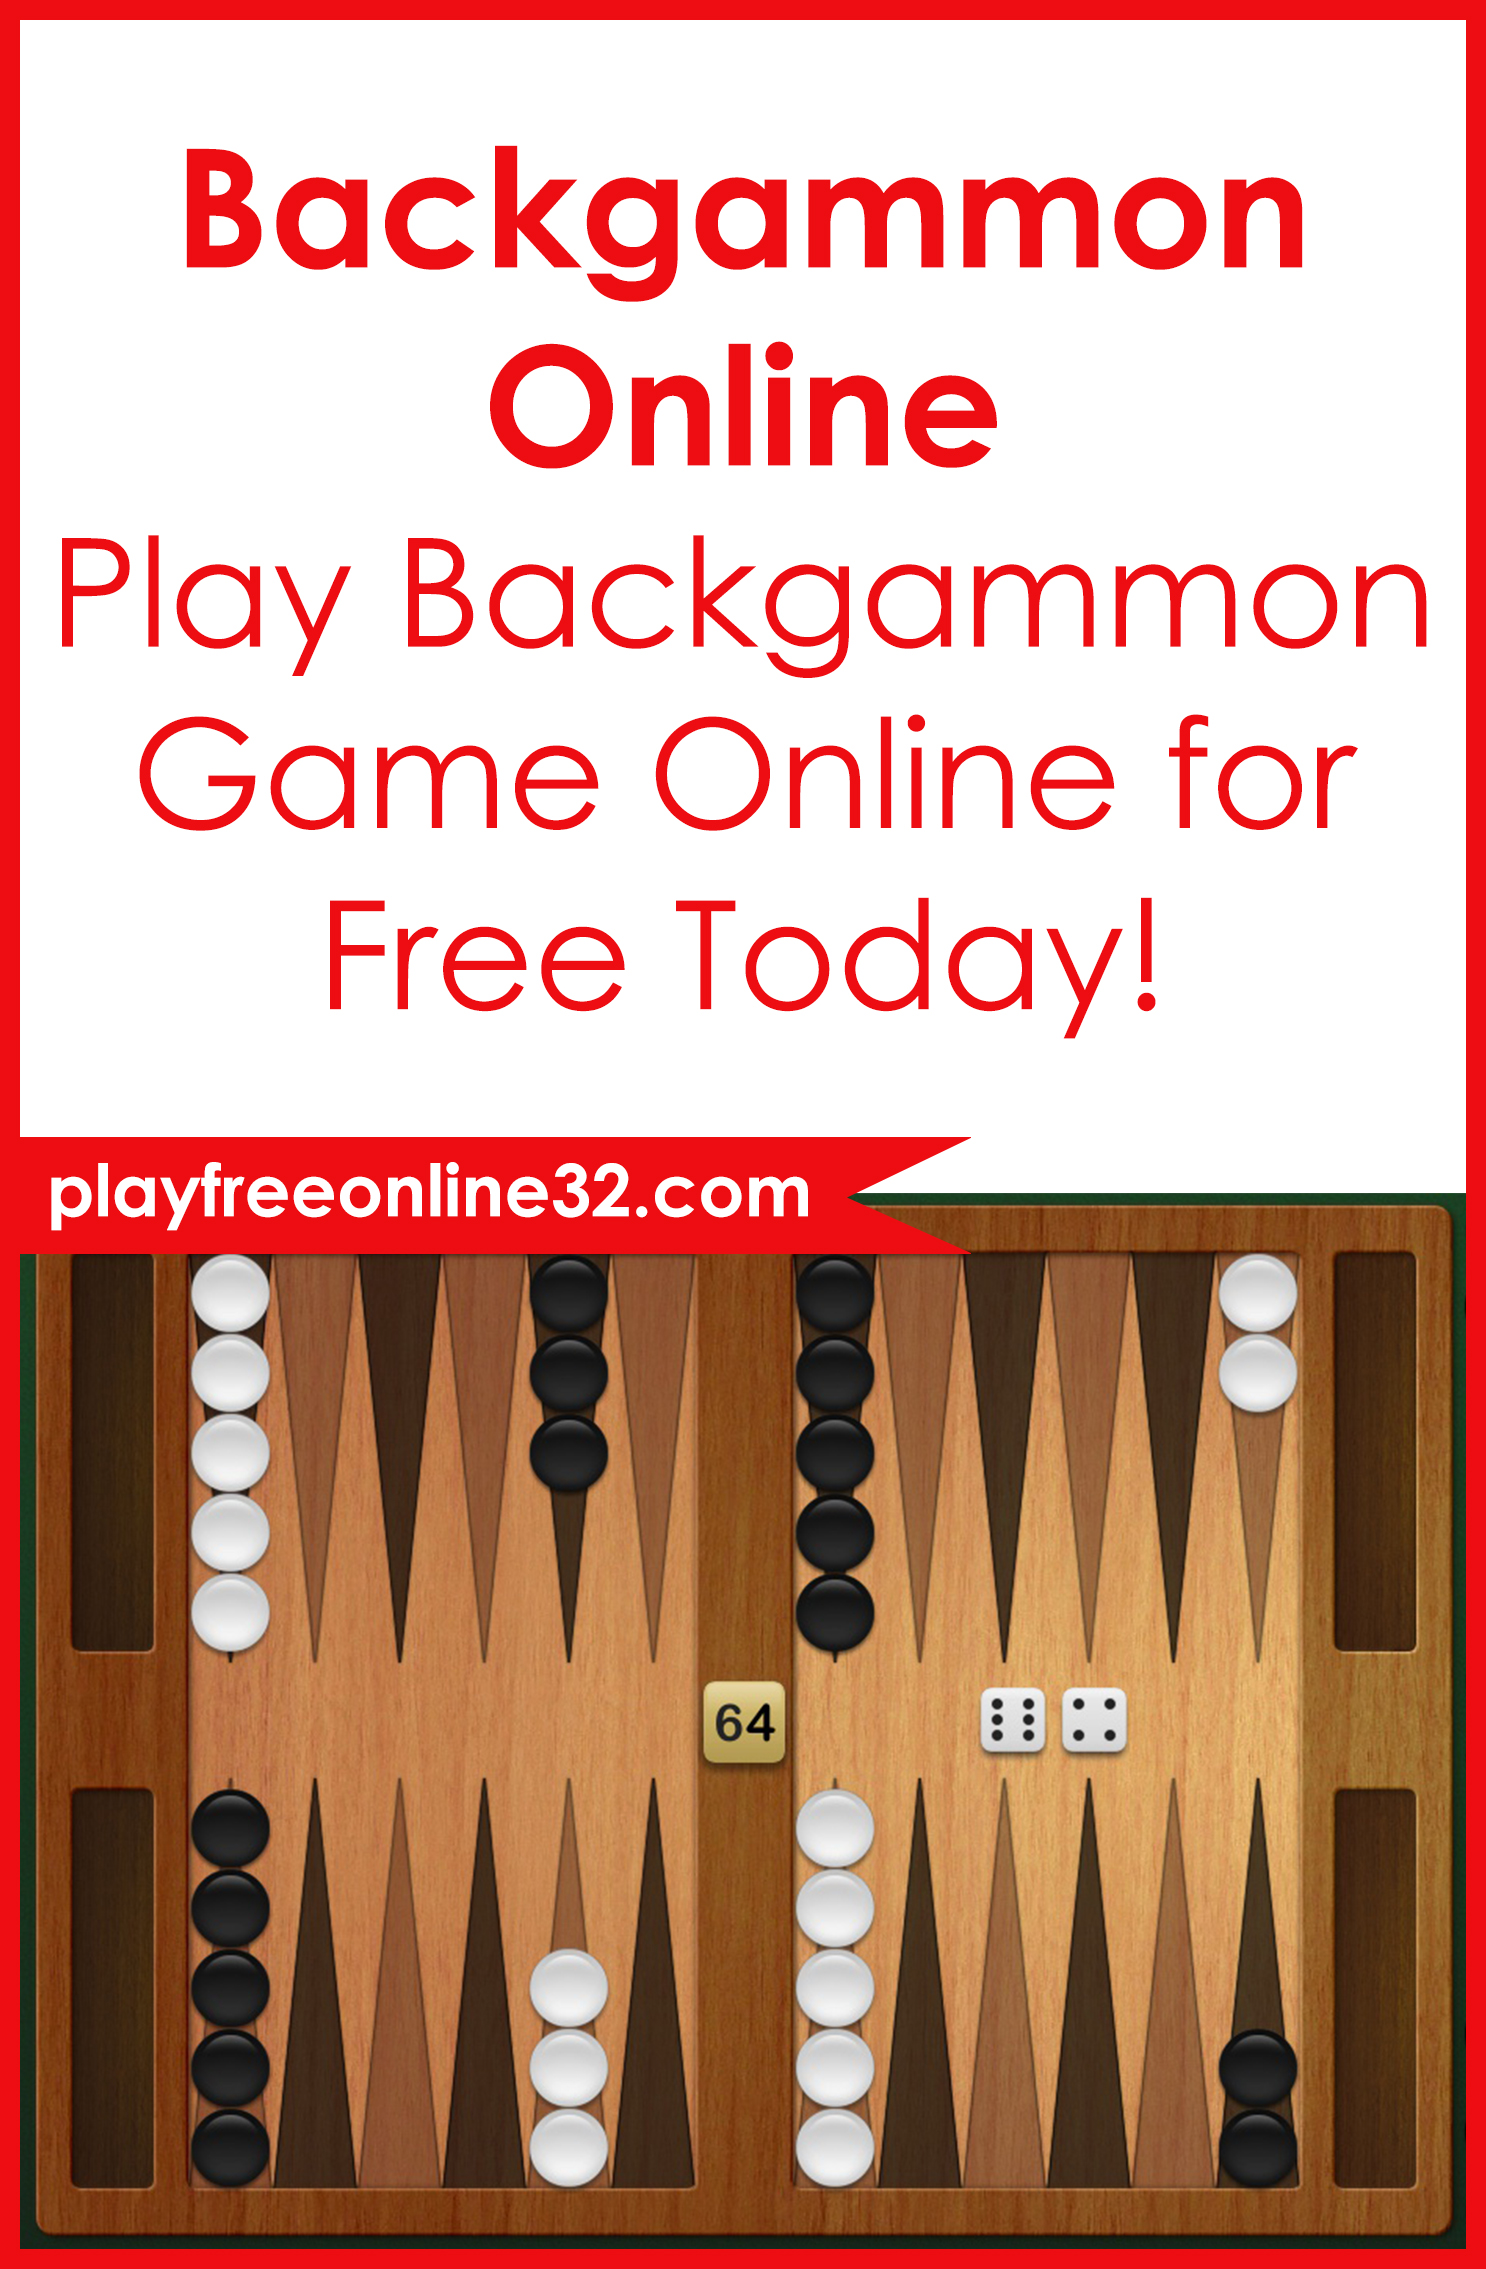 Backgammon Online • Play Backgammon Game Online for Free Today!